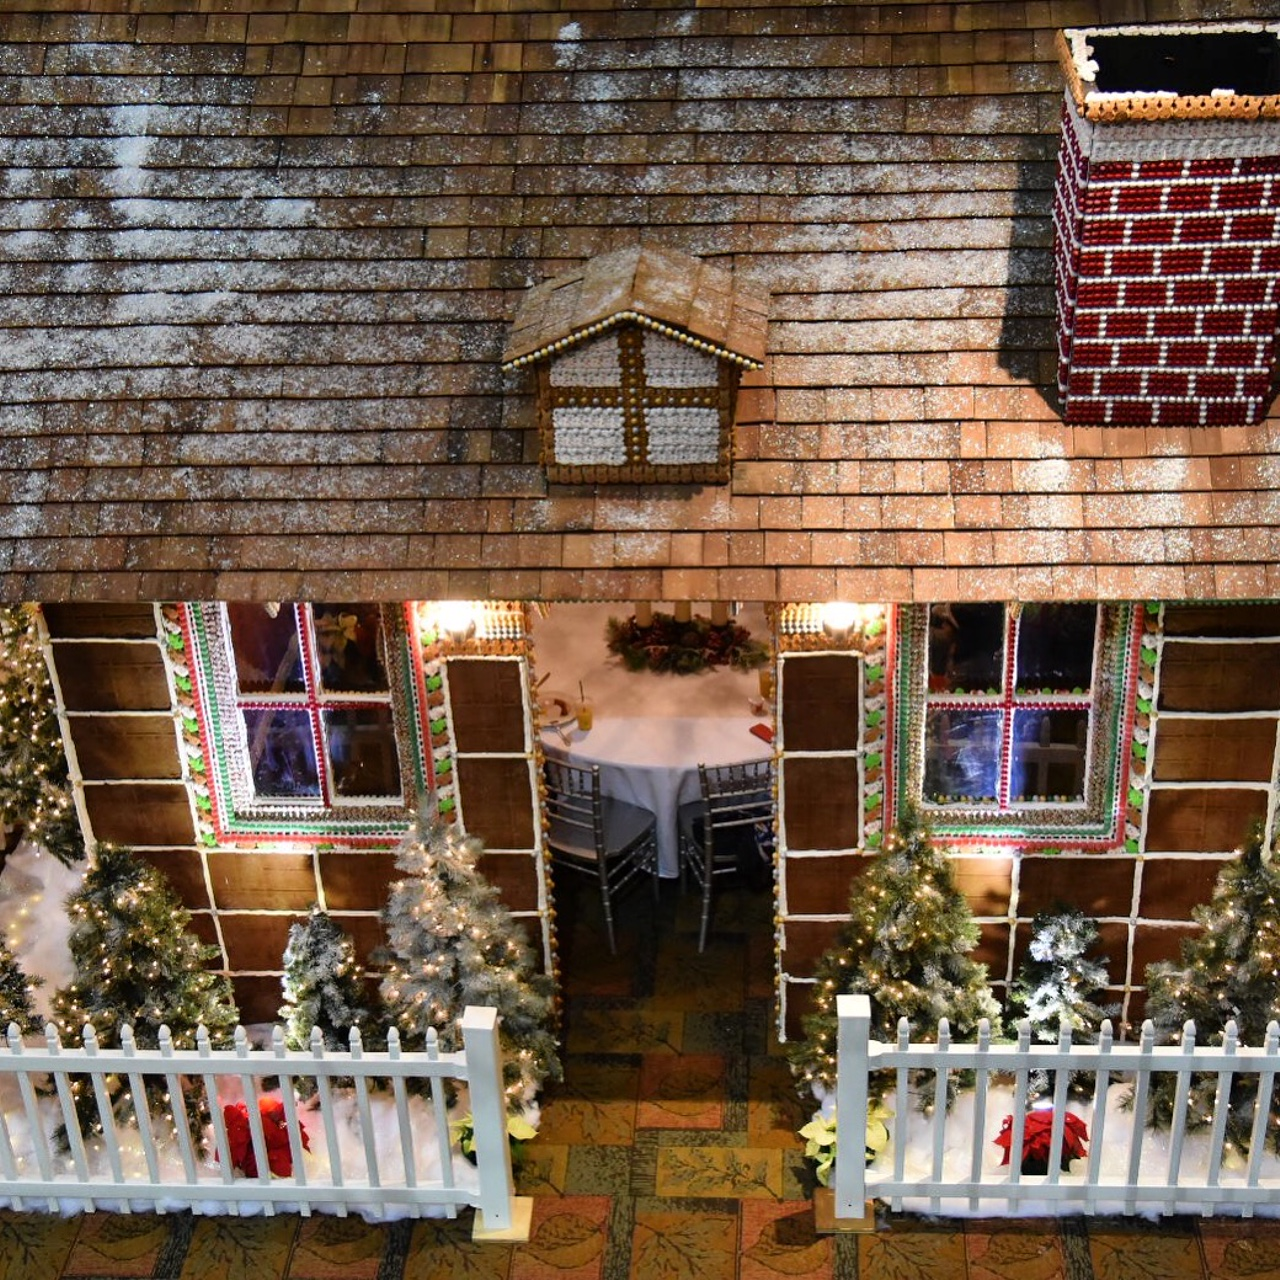 Beach Themed Gingerbread House: Dine Inside Of A Life-Size Gingerbread House